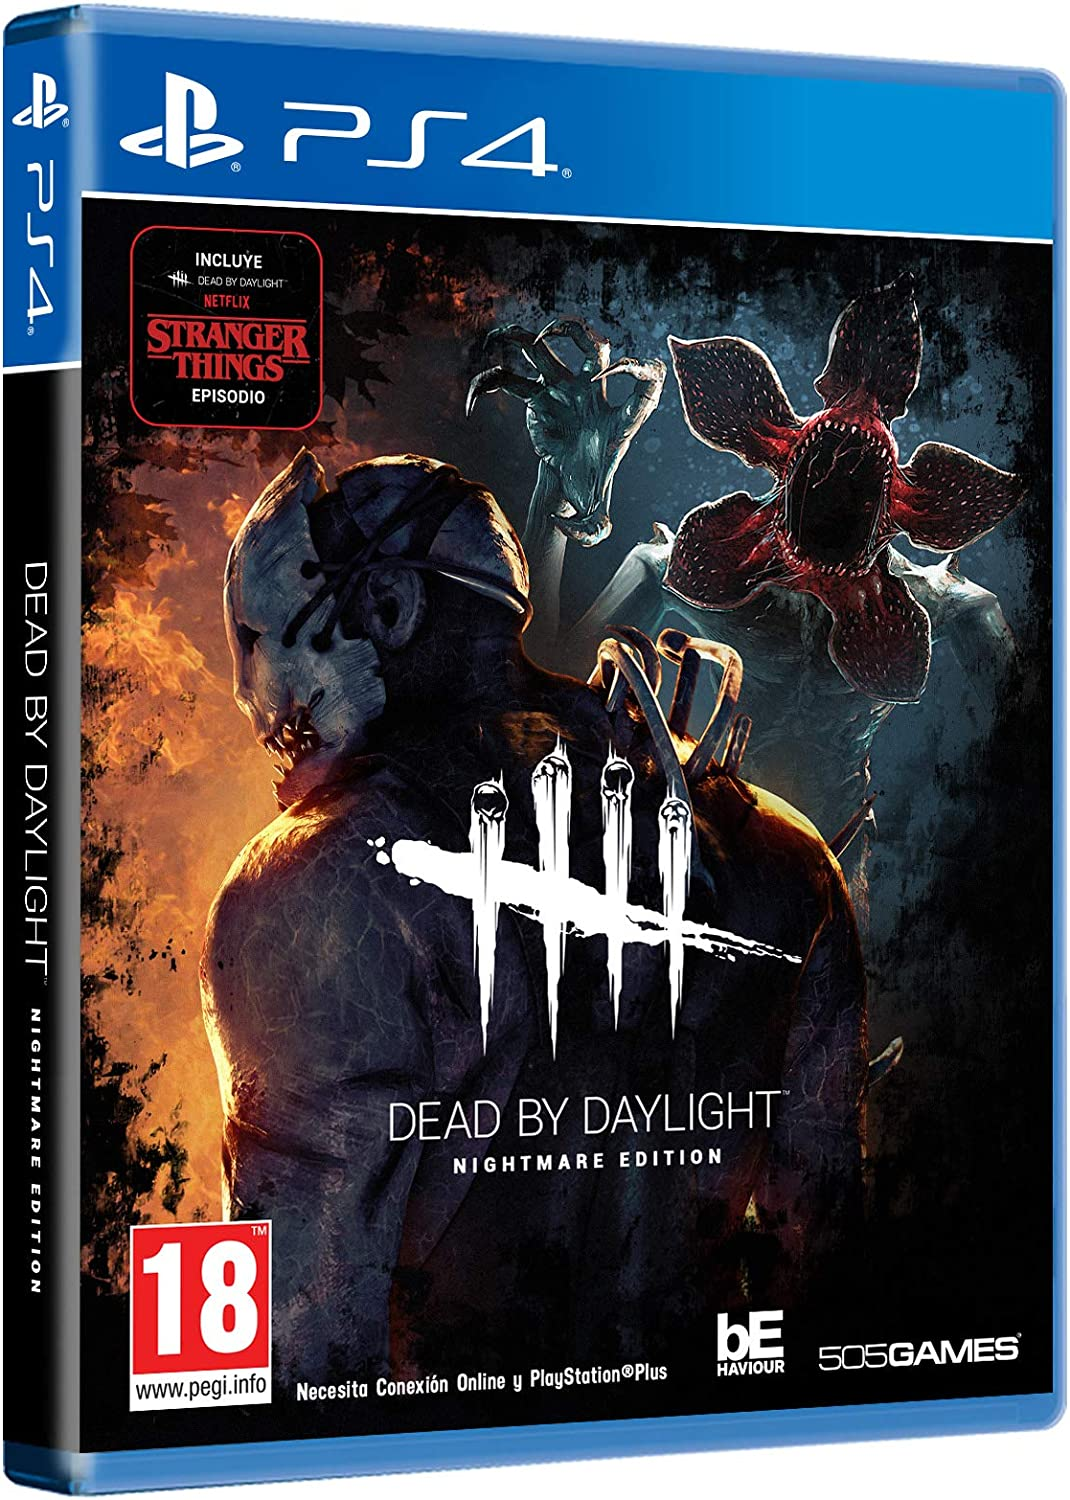 Dead By Daylight Nightmare Edition: Amazon.es: Videojuegos